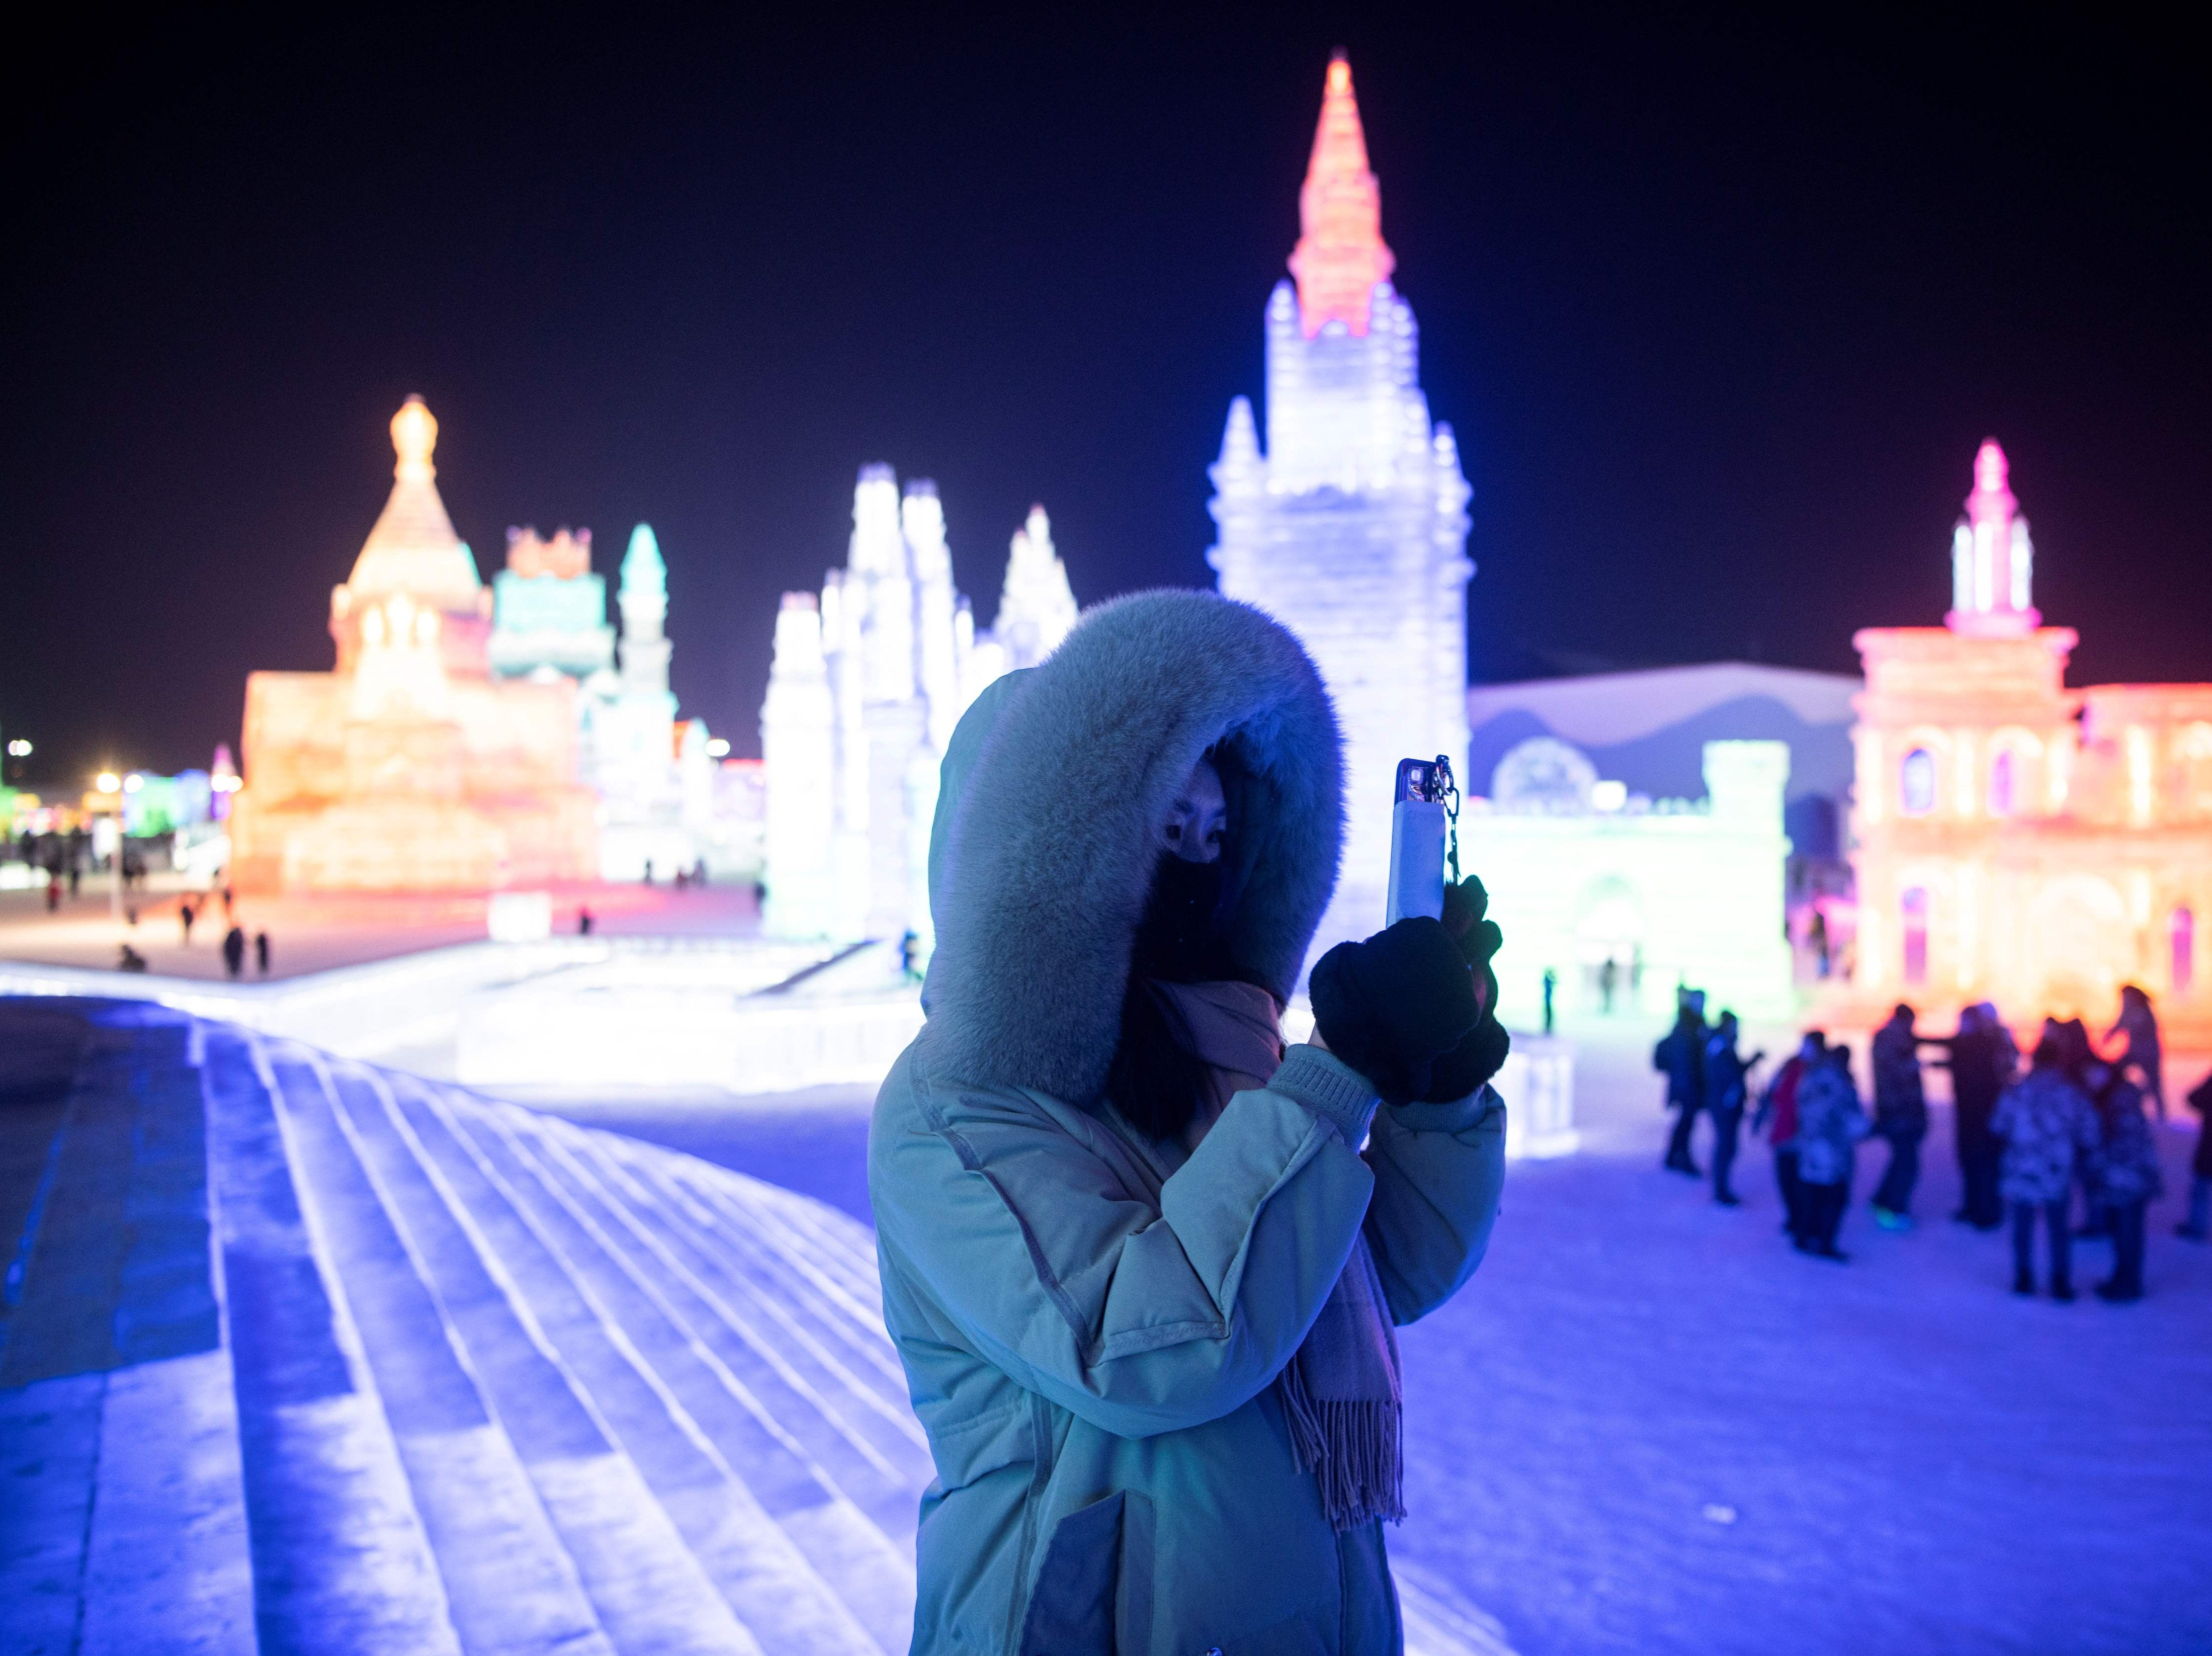 A visitor takes pictures of ice sculptures for the opening day of the annual Harbin Ice and Snow Sculpture Festival in Harbin in China's northeast Heilongjiang province on Jan. 5, 2019.